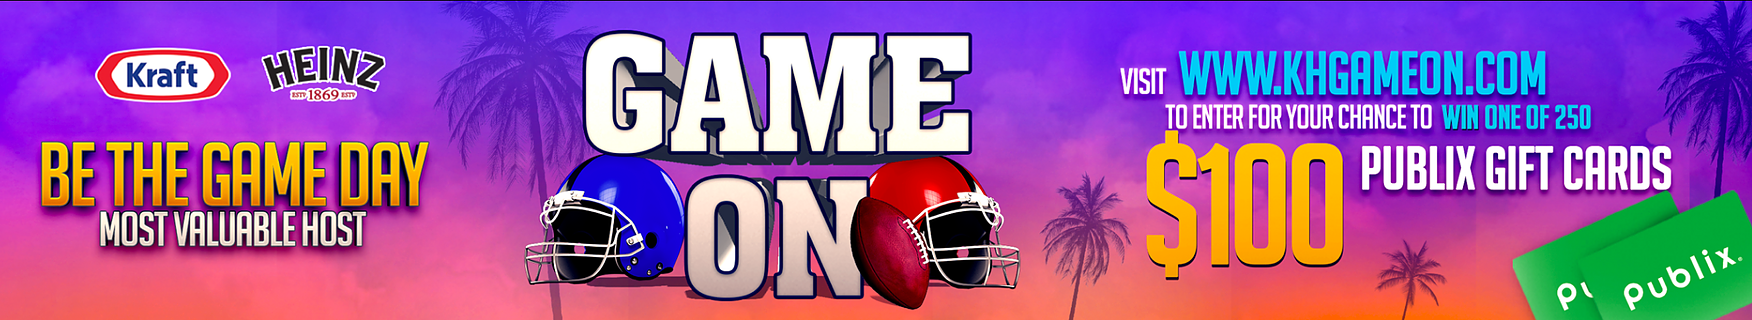 Game On - Get Ready For The Big Game And Enter To Win One Of 250 $100 Publix Gift Cards! on I Heart Publix